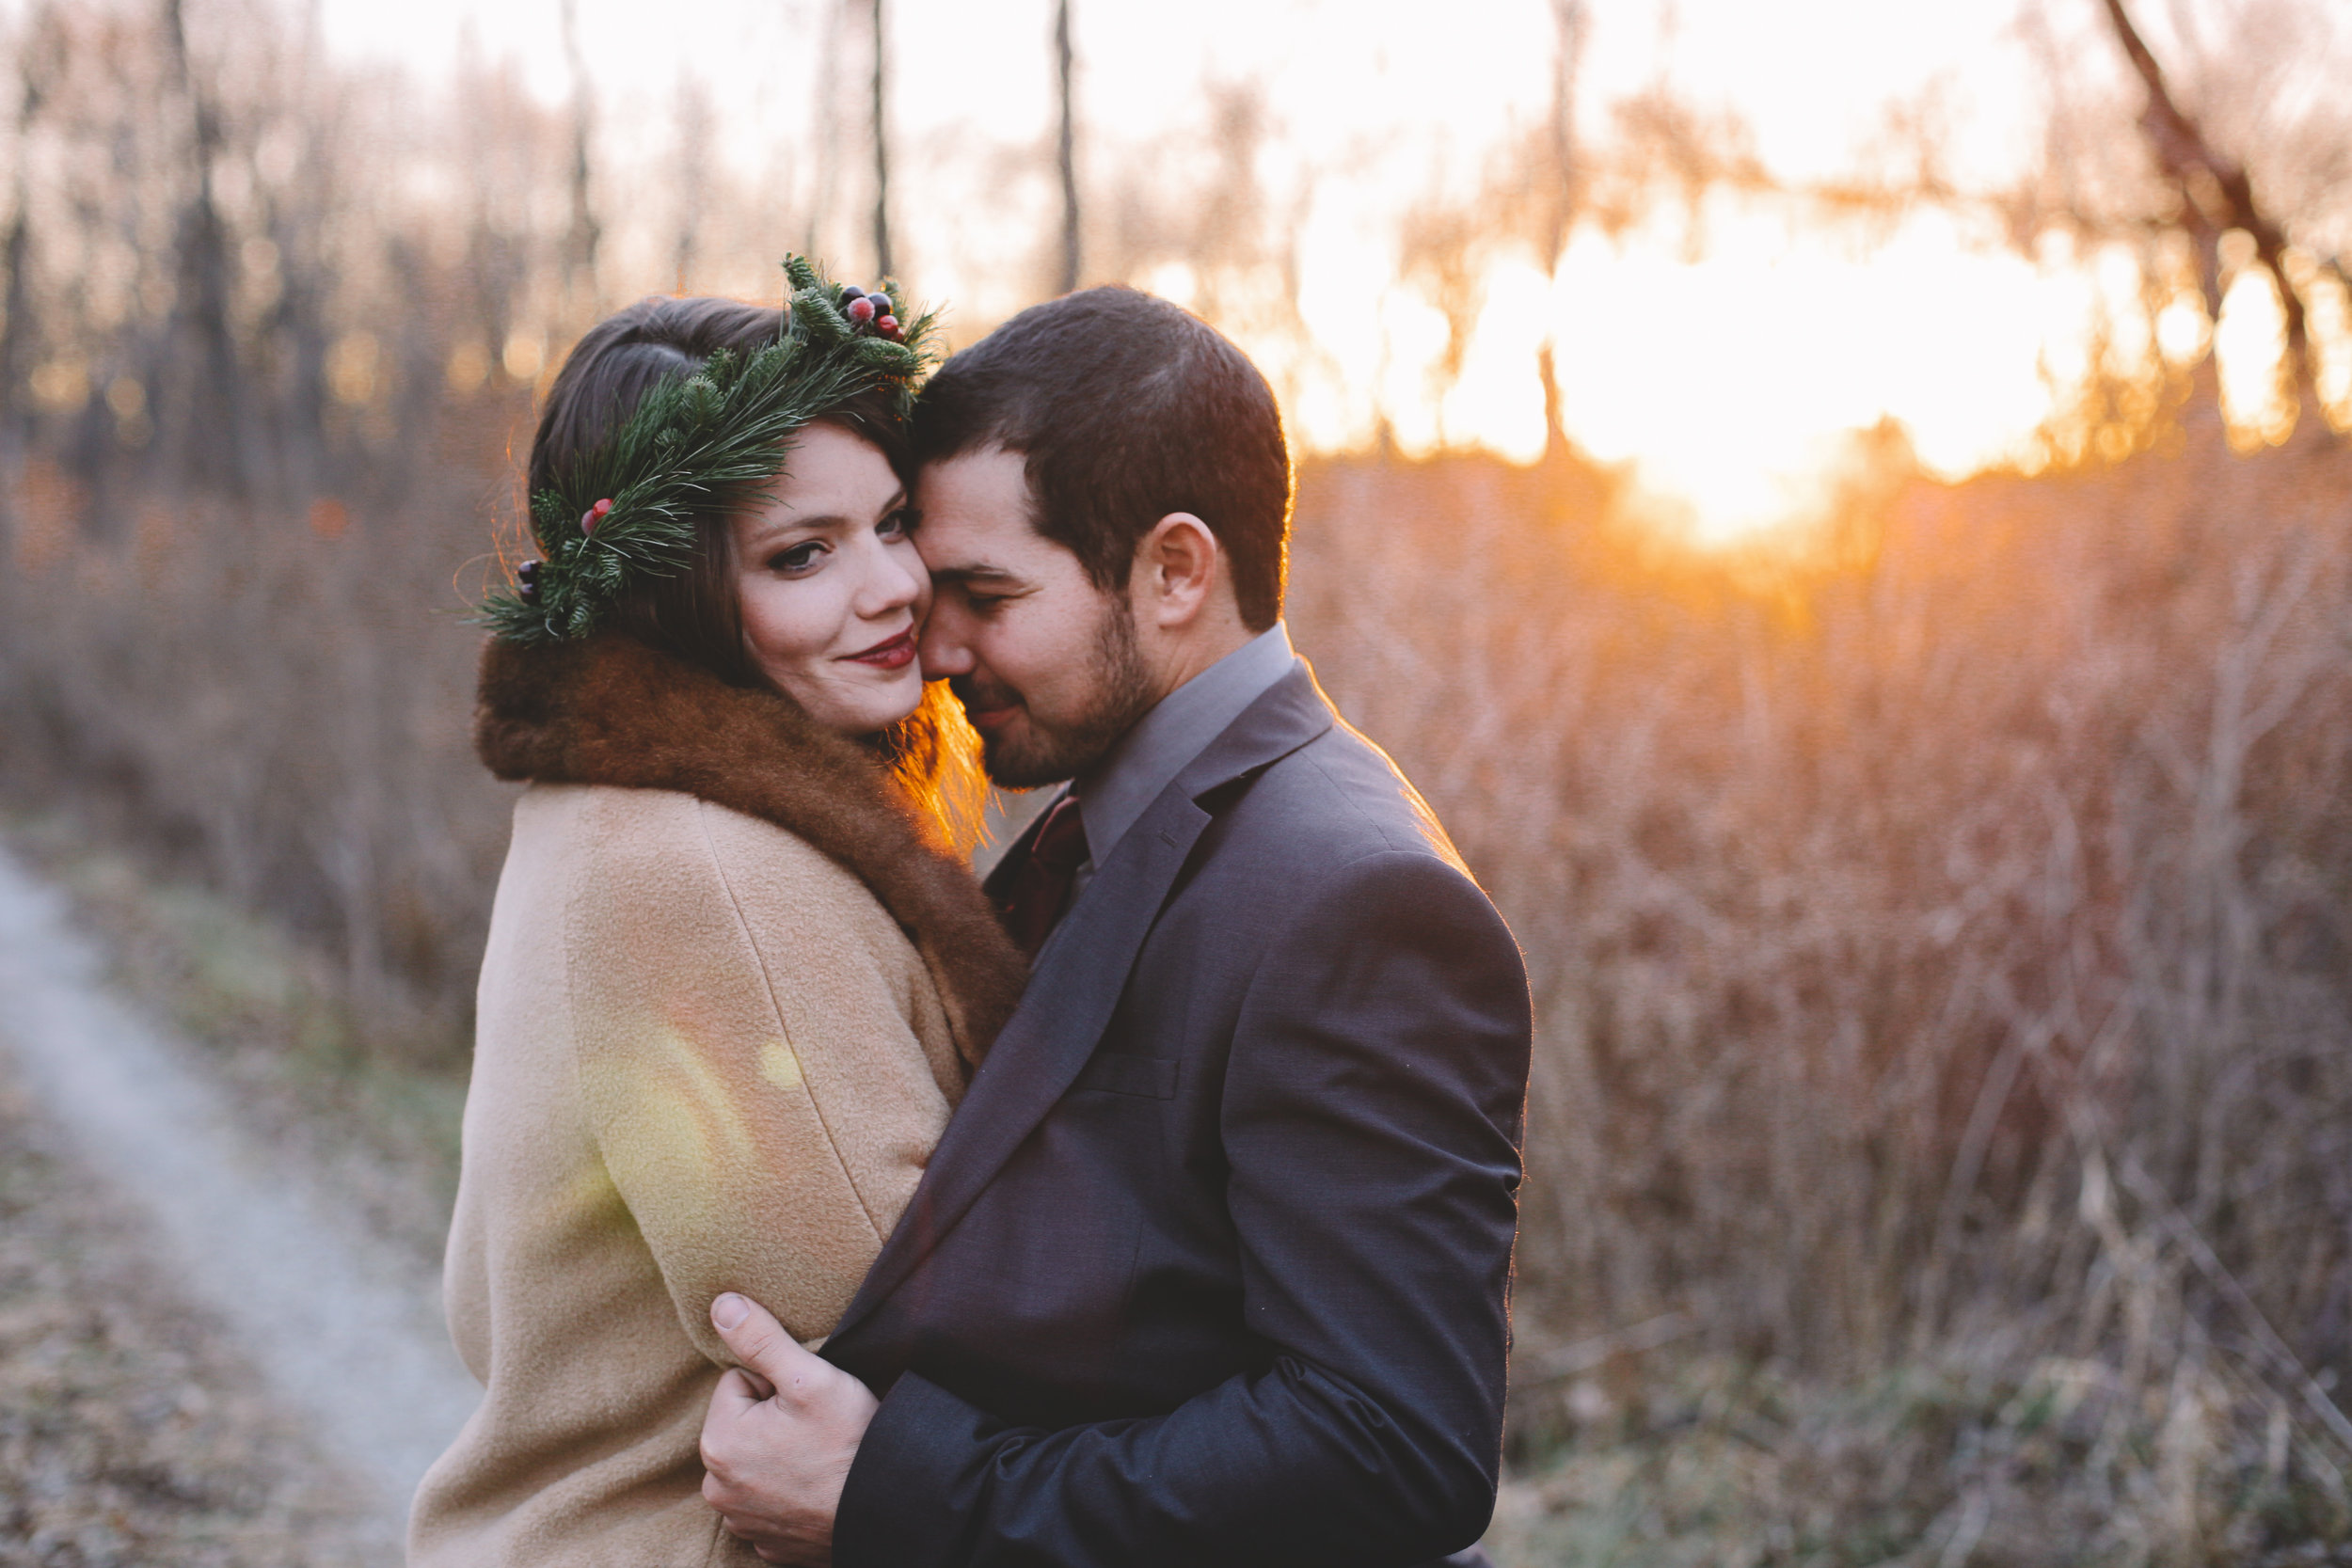 Dillon + Courtney's Cozy Winter Vows